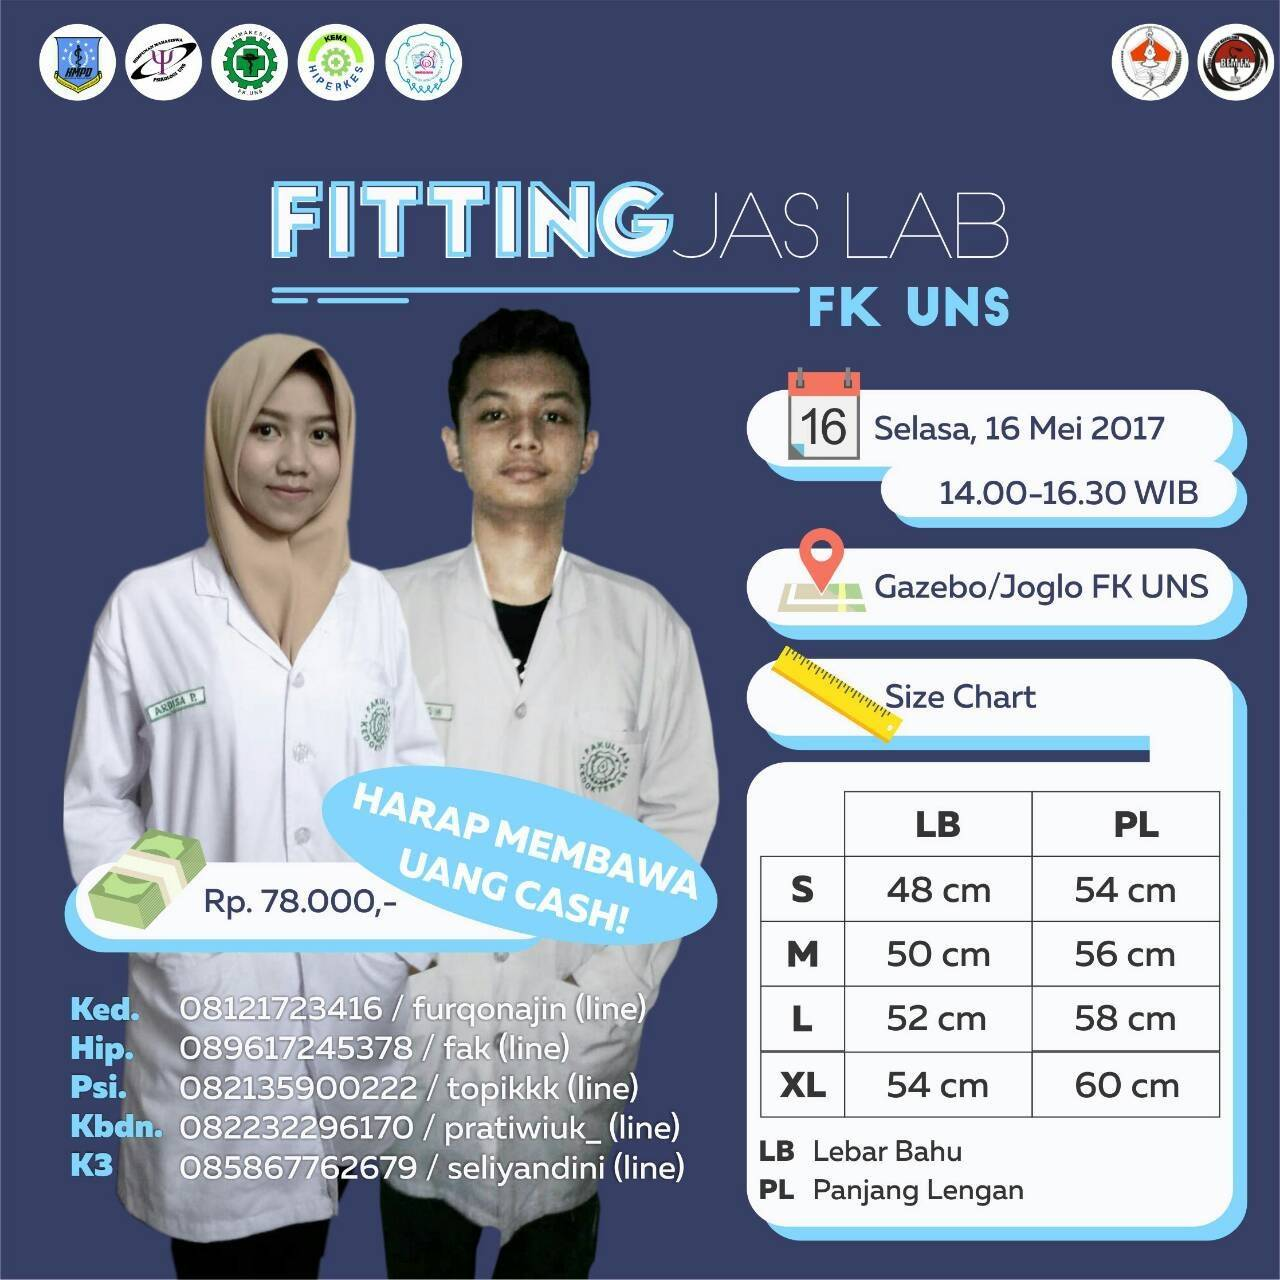 Fitting Jas Lab FK UNS